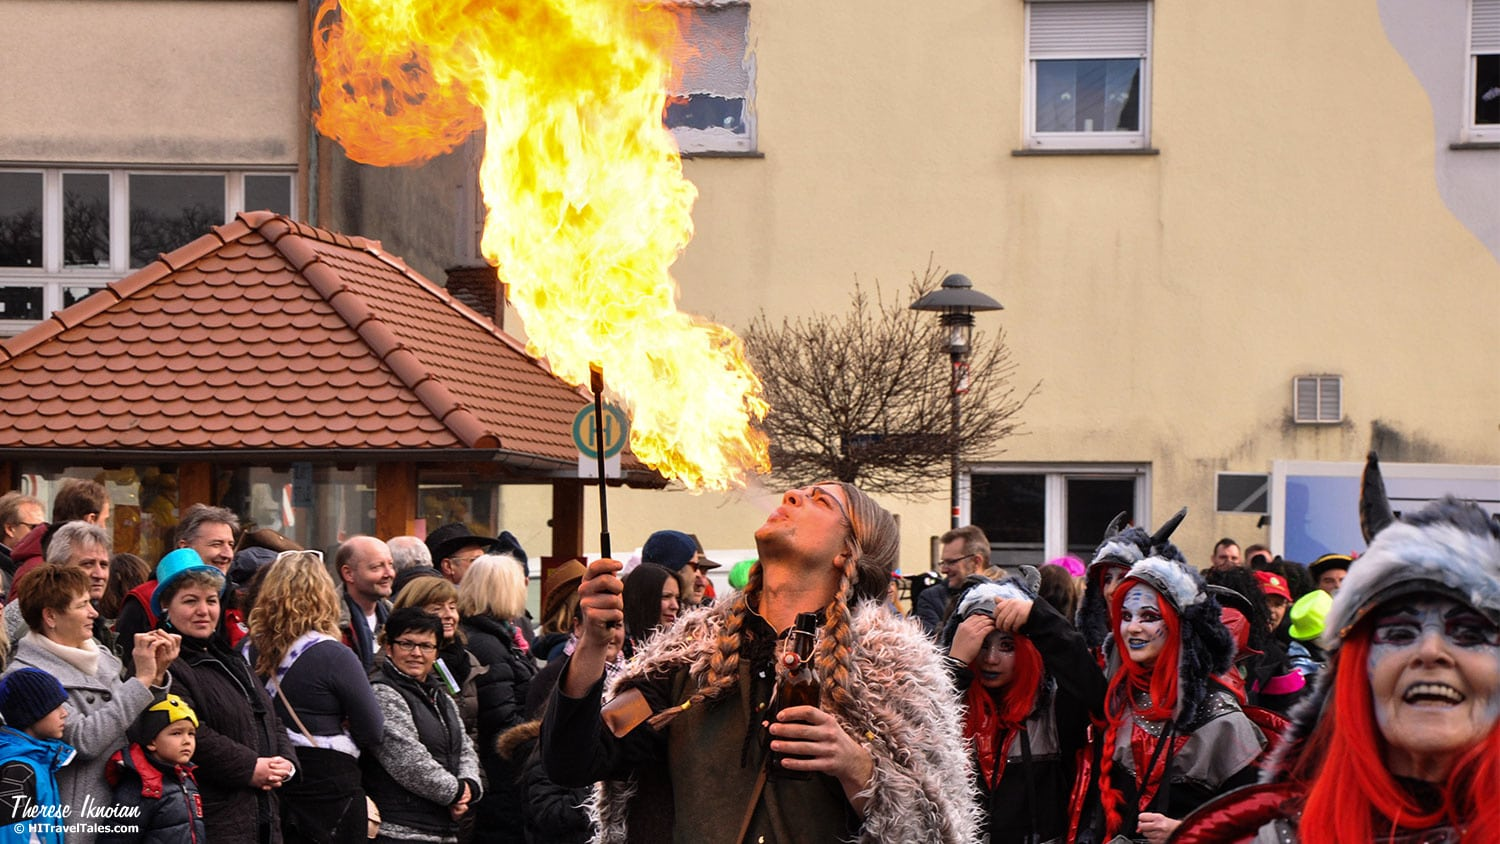 There are many clubs in the larger area that spend the entire year preparing for the season's parades and celebrations. Musicians, jugglers, clowns and other performers, including fire-breathers.